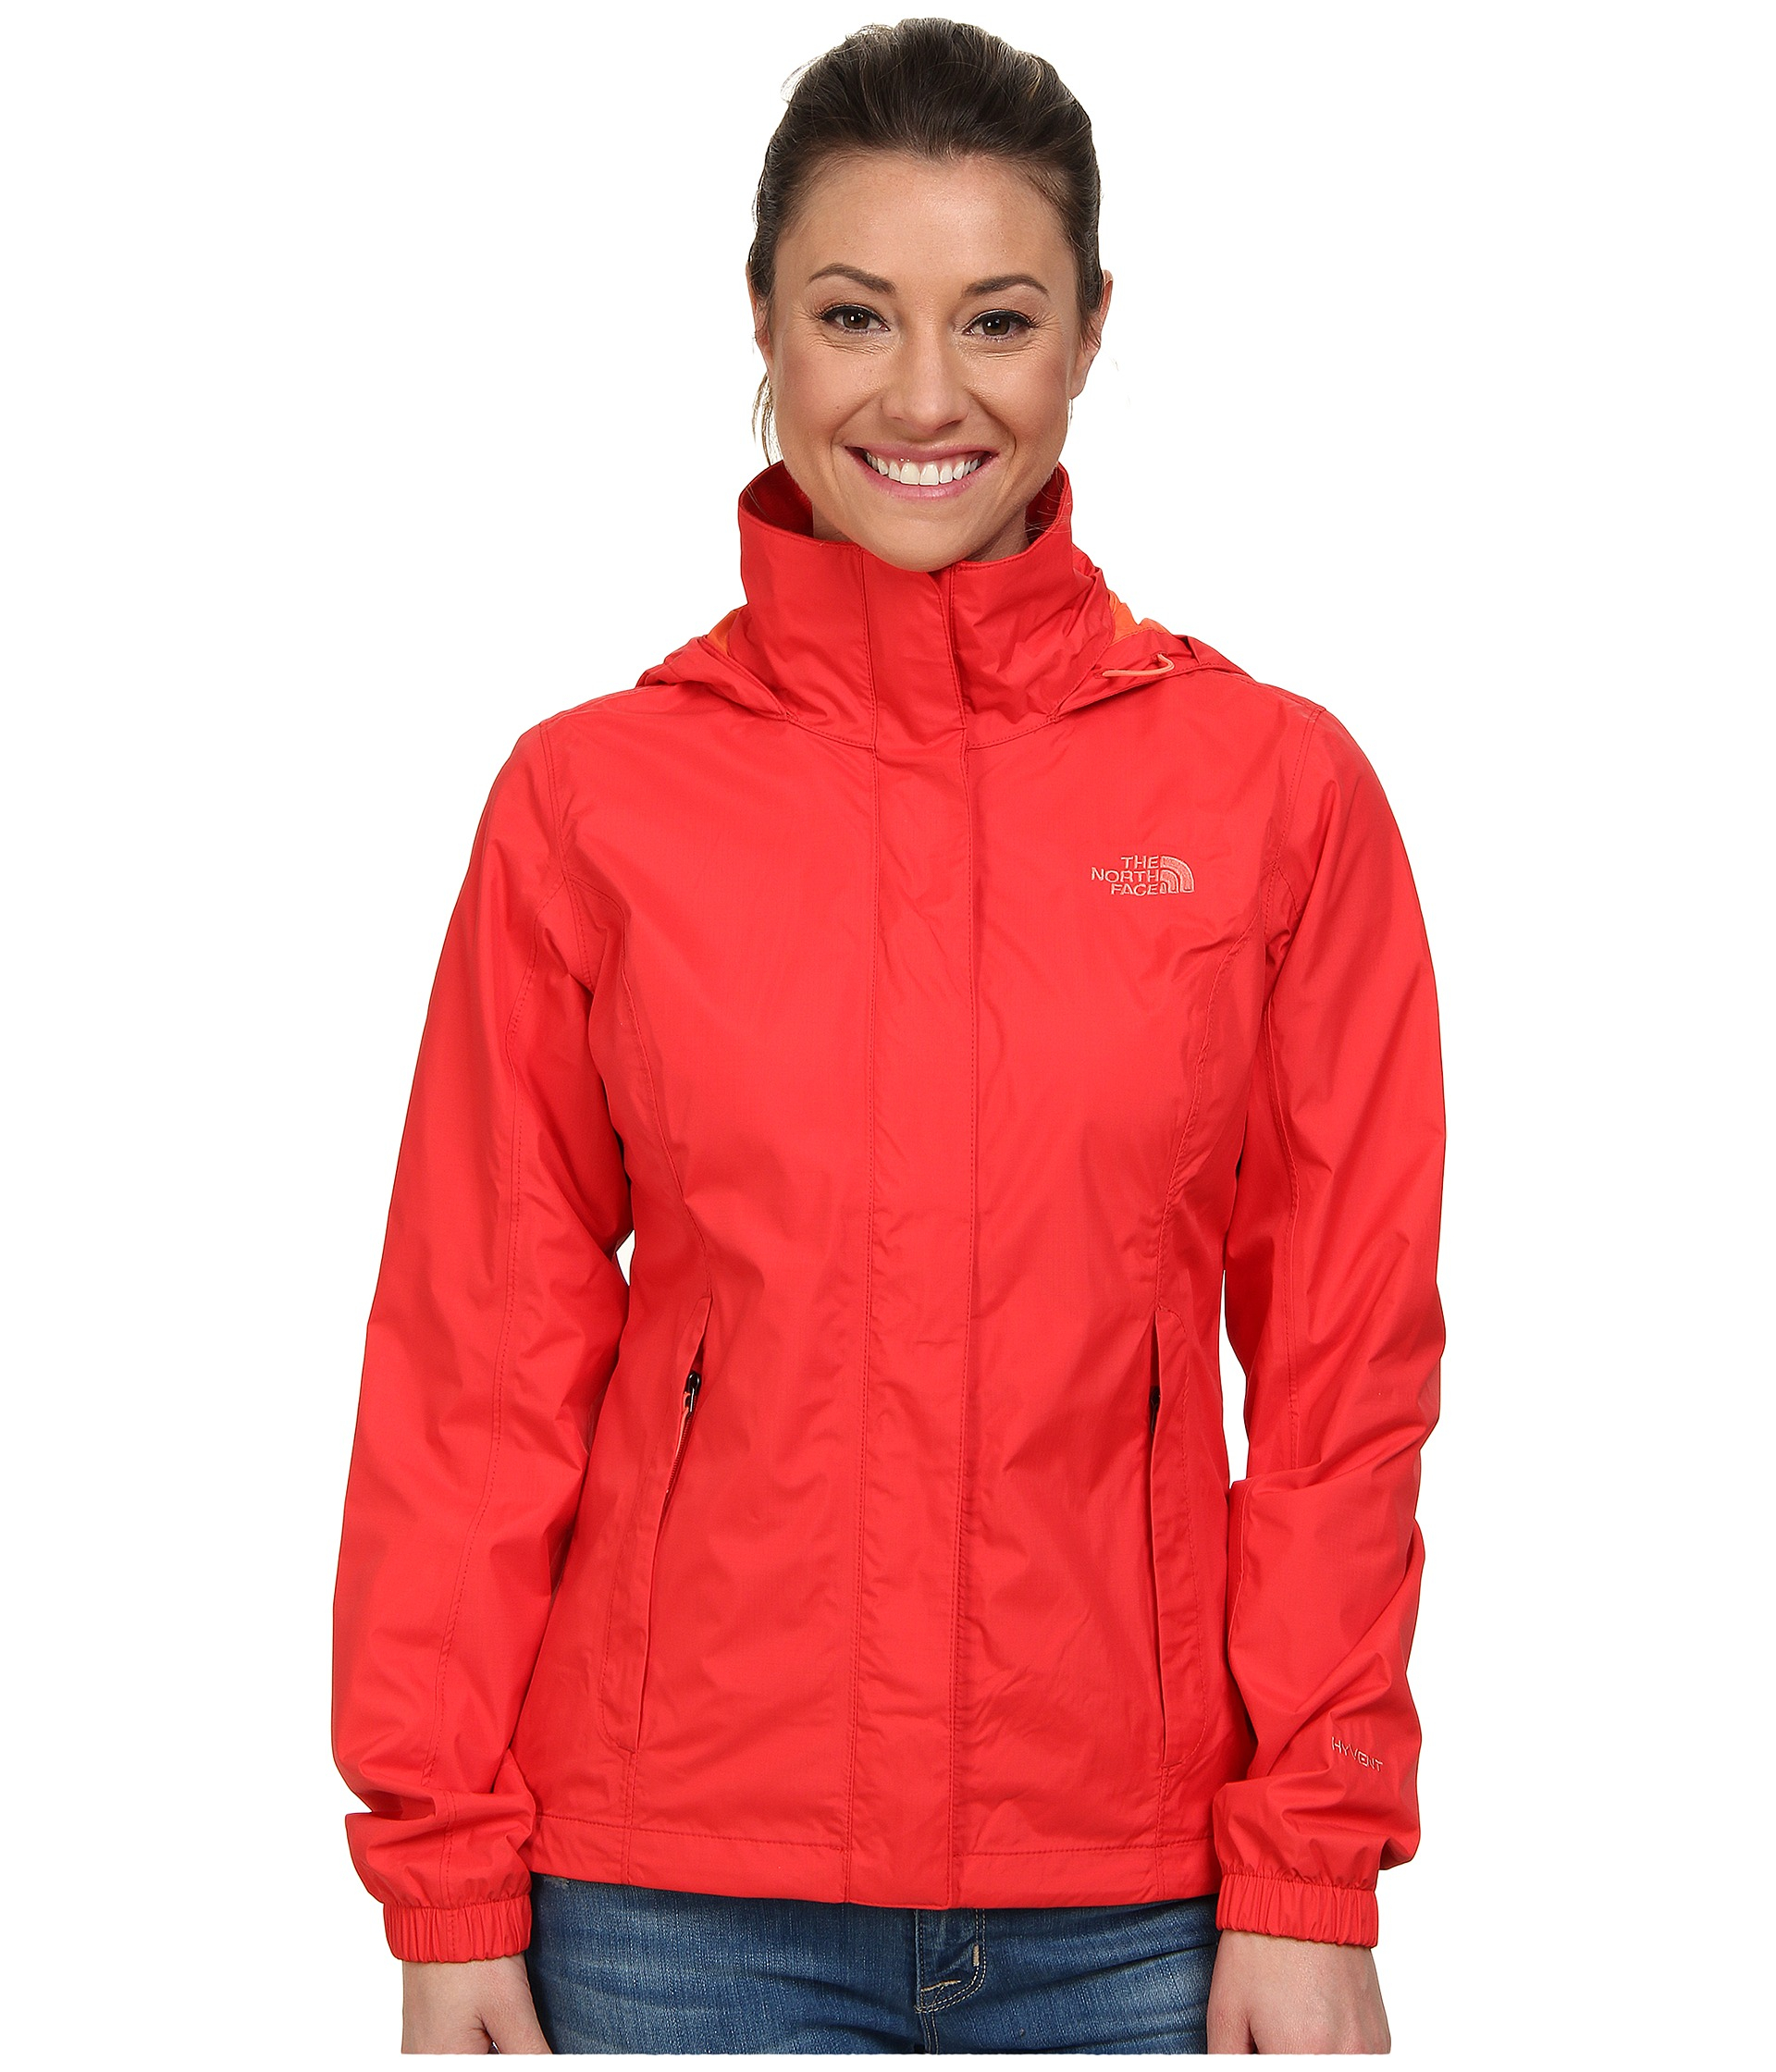 9bf9e80214e0 ... discount code for lyst the north face resolve jacket in red 5c276 860f3  ...